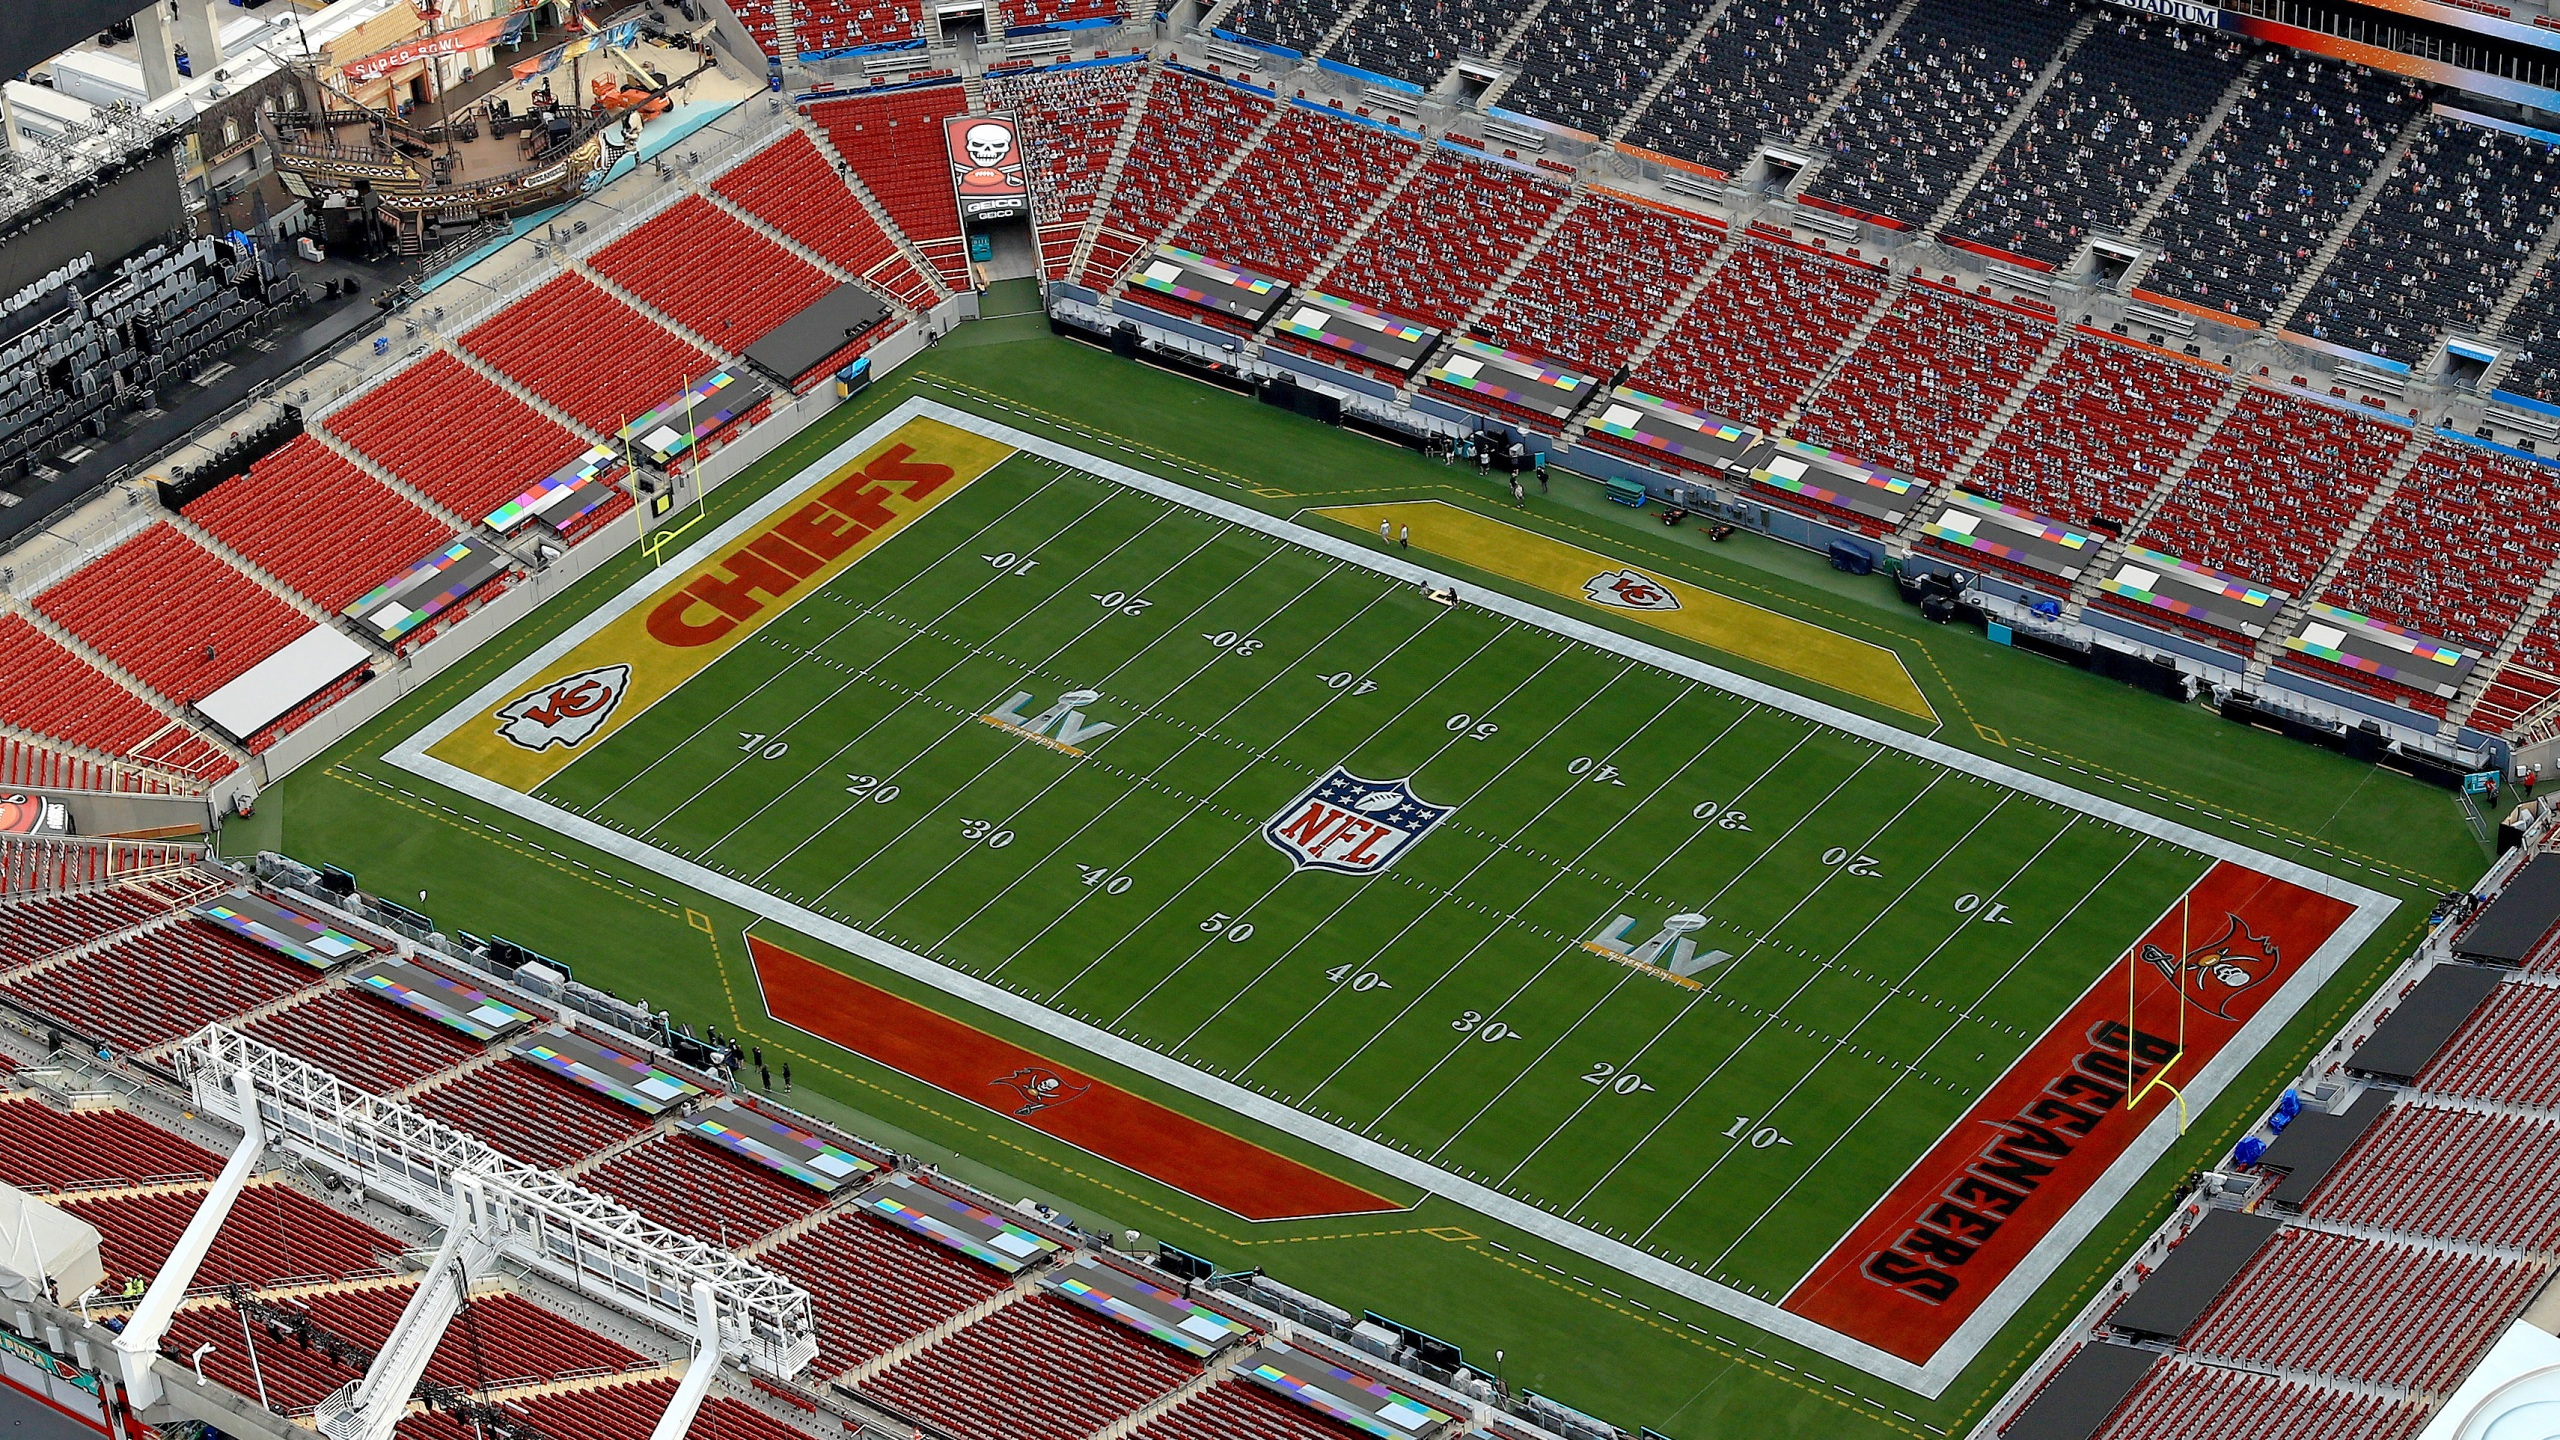 An aerial view of Raymond James Stadium ahead of Super Bowl LV on Jan. 31, 2021 in Tampa, Florida. (Mike Ehrmann/Getty Images)